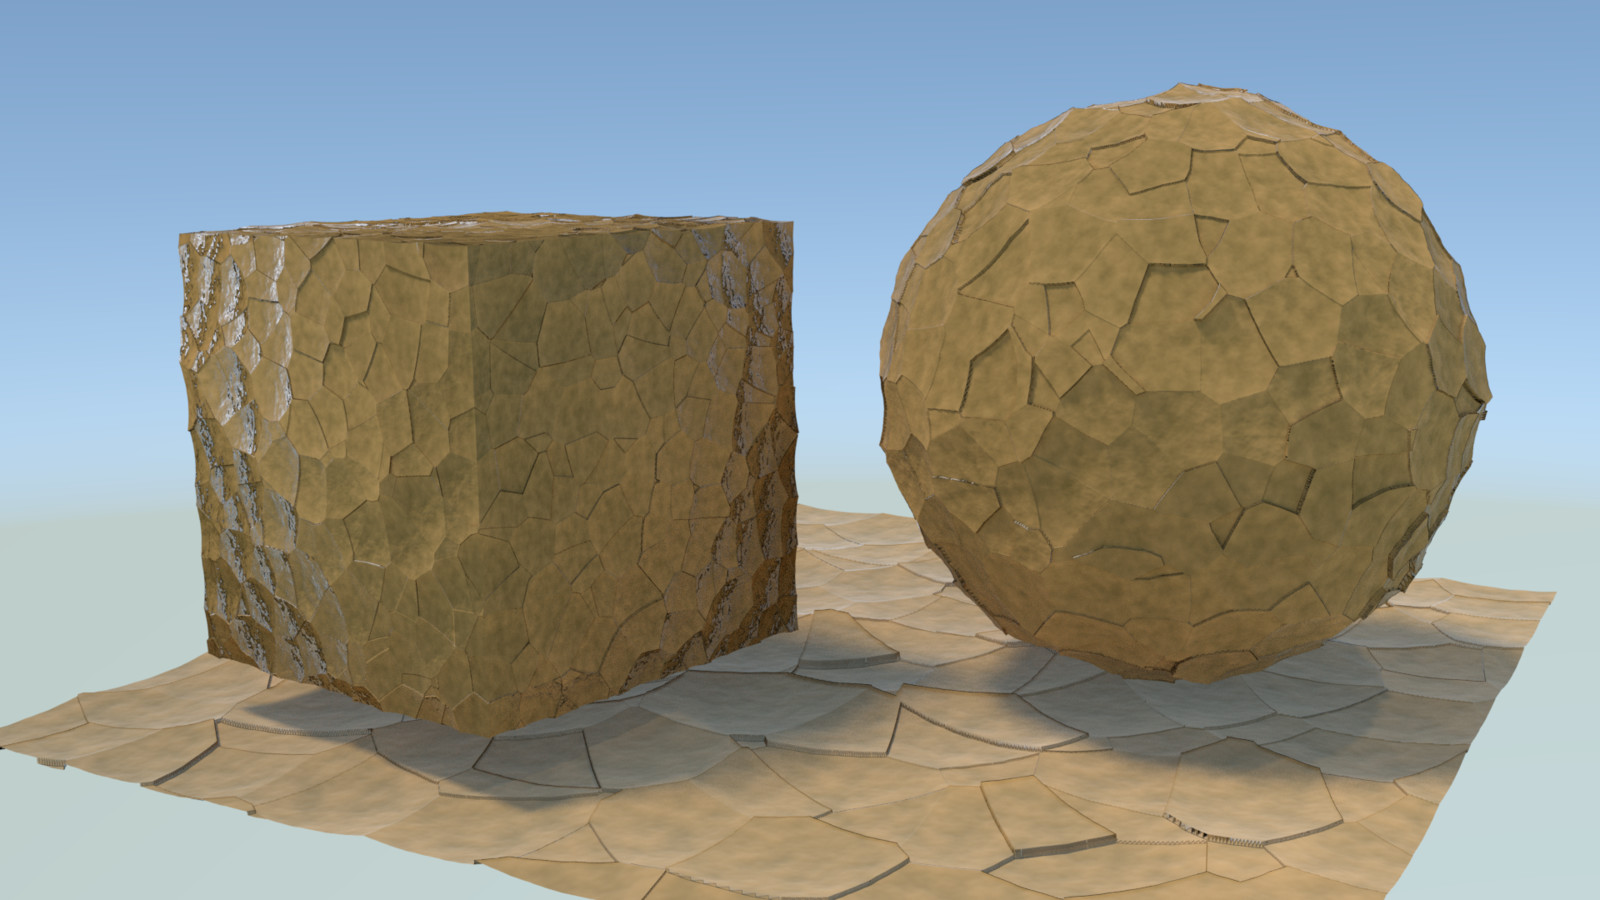 second render; more realistic displacement.